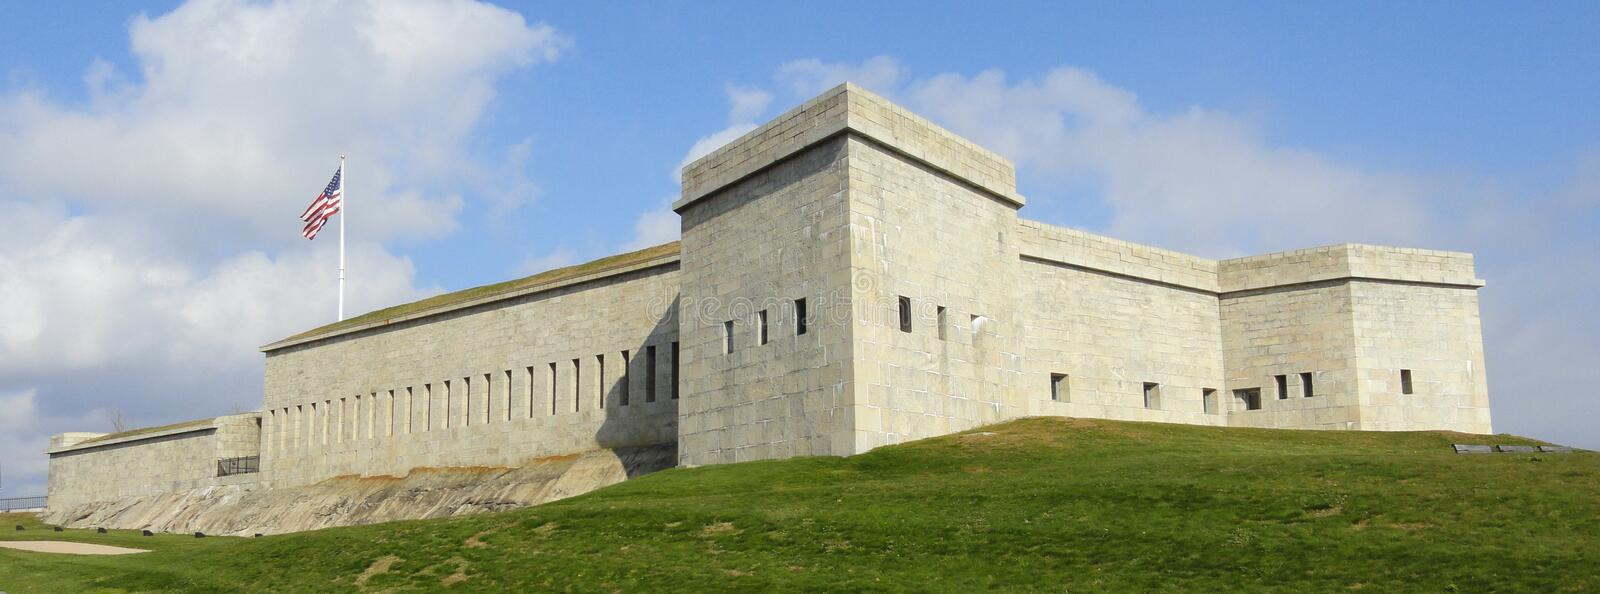 Fort Trumbull stockfotos